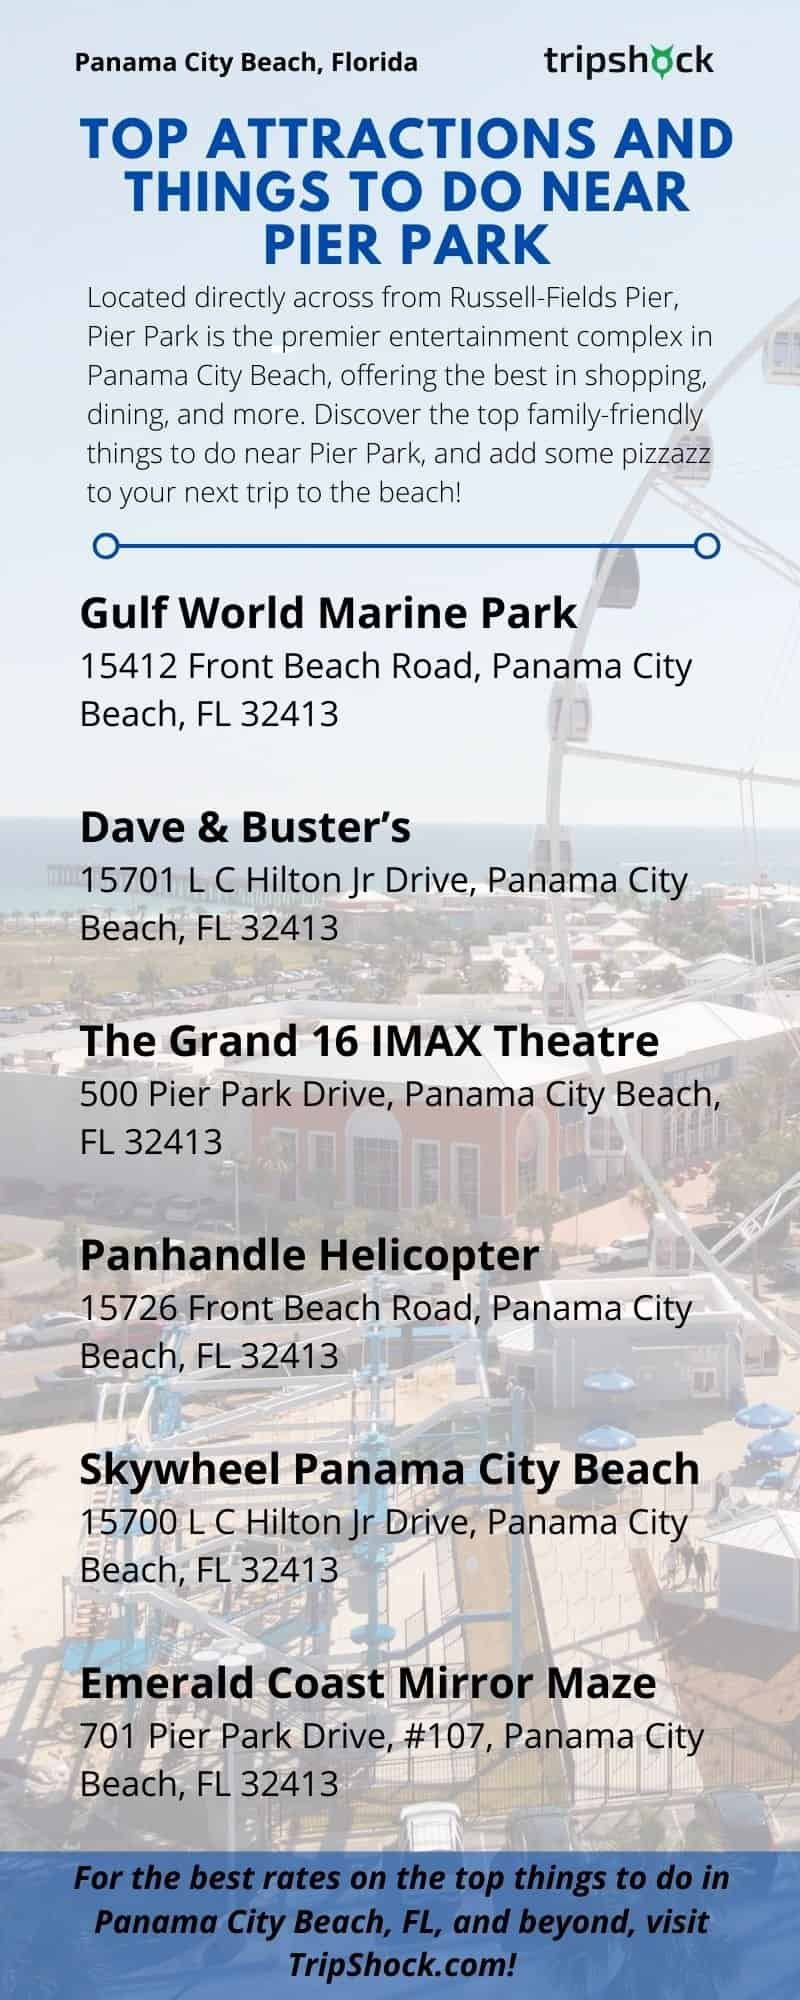 Top Attractions and Things to do Near Pier Park